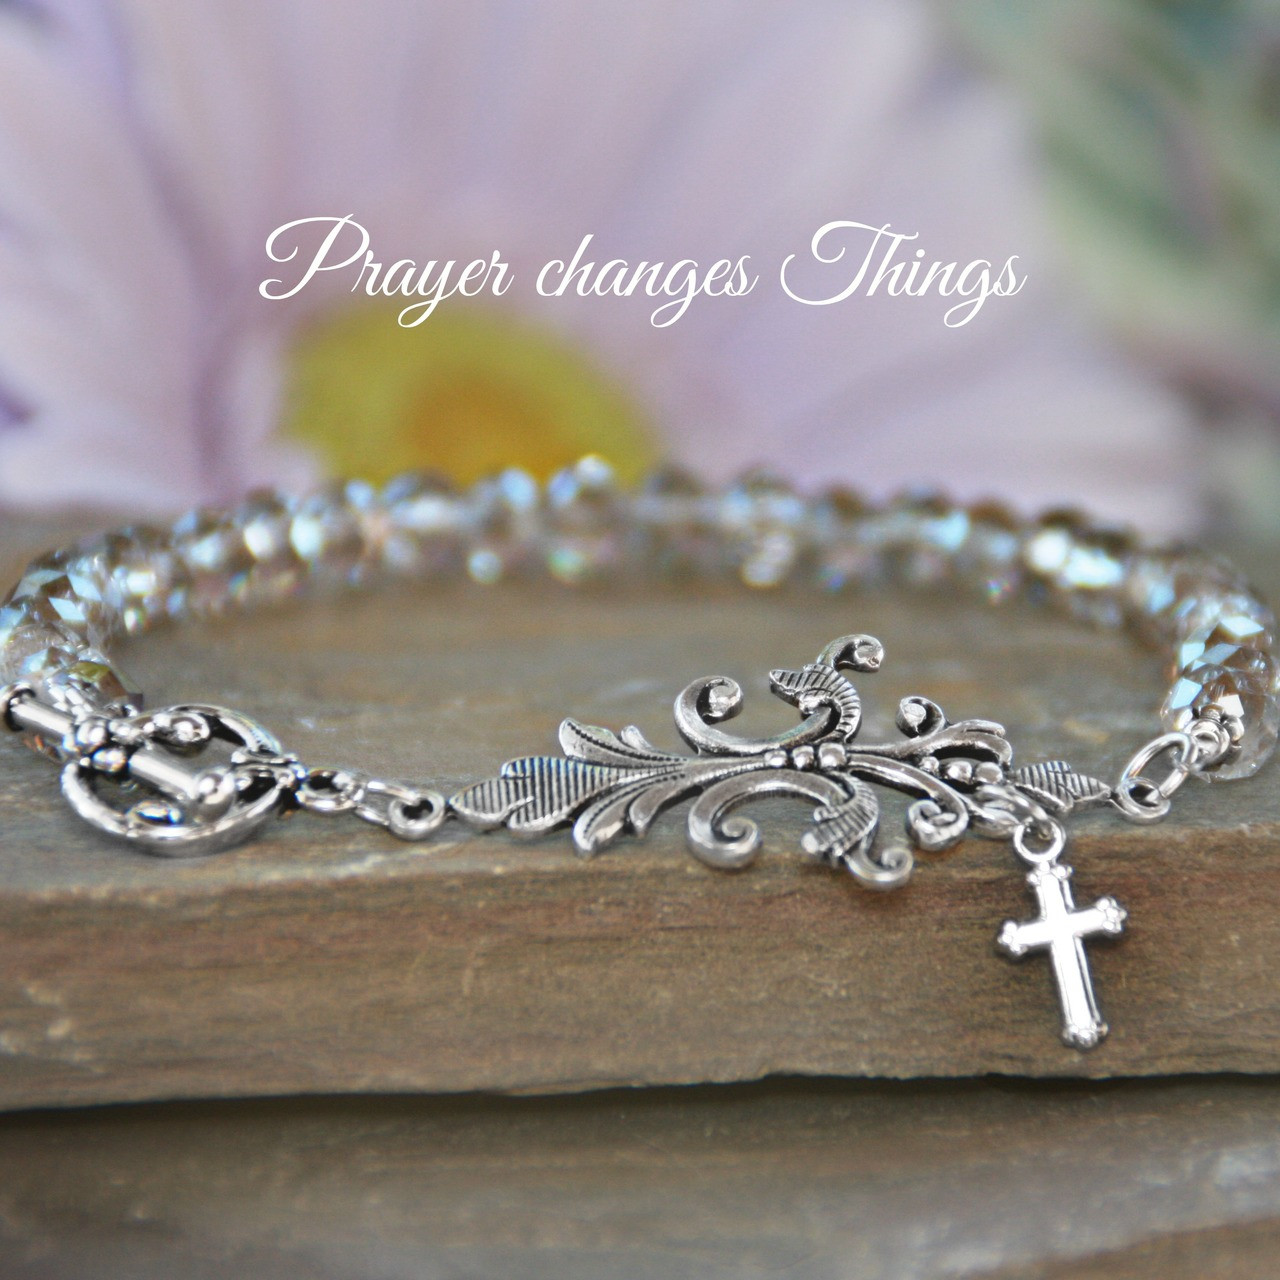 IN-214  Platinum Crystals Classic Prayer changes Things Bracelet with Vintage focal point